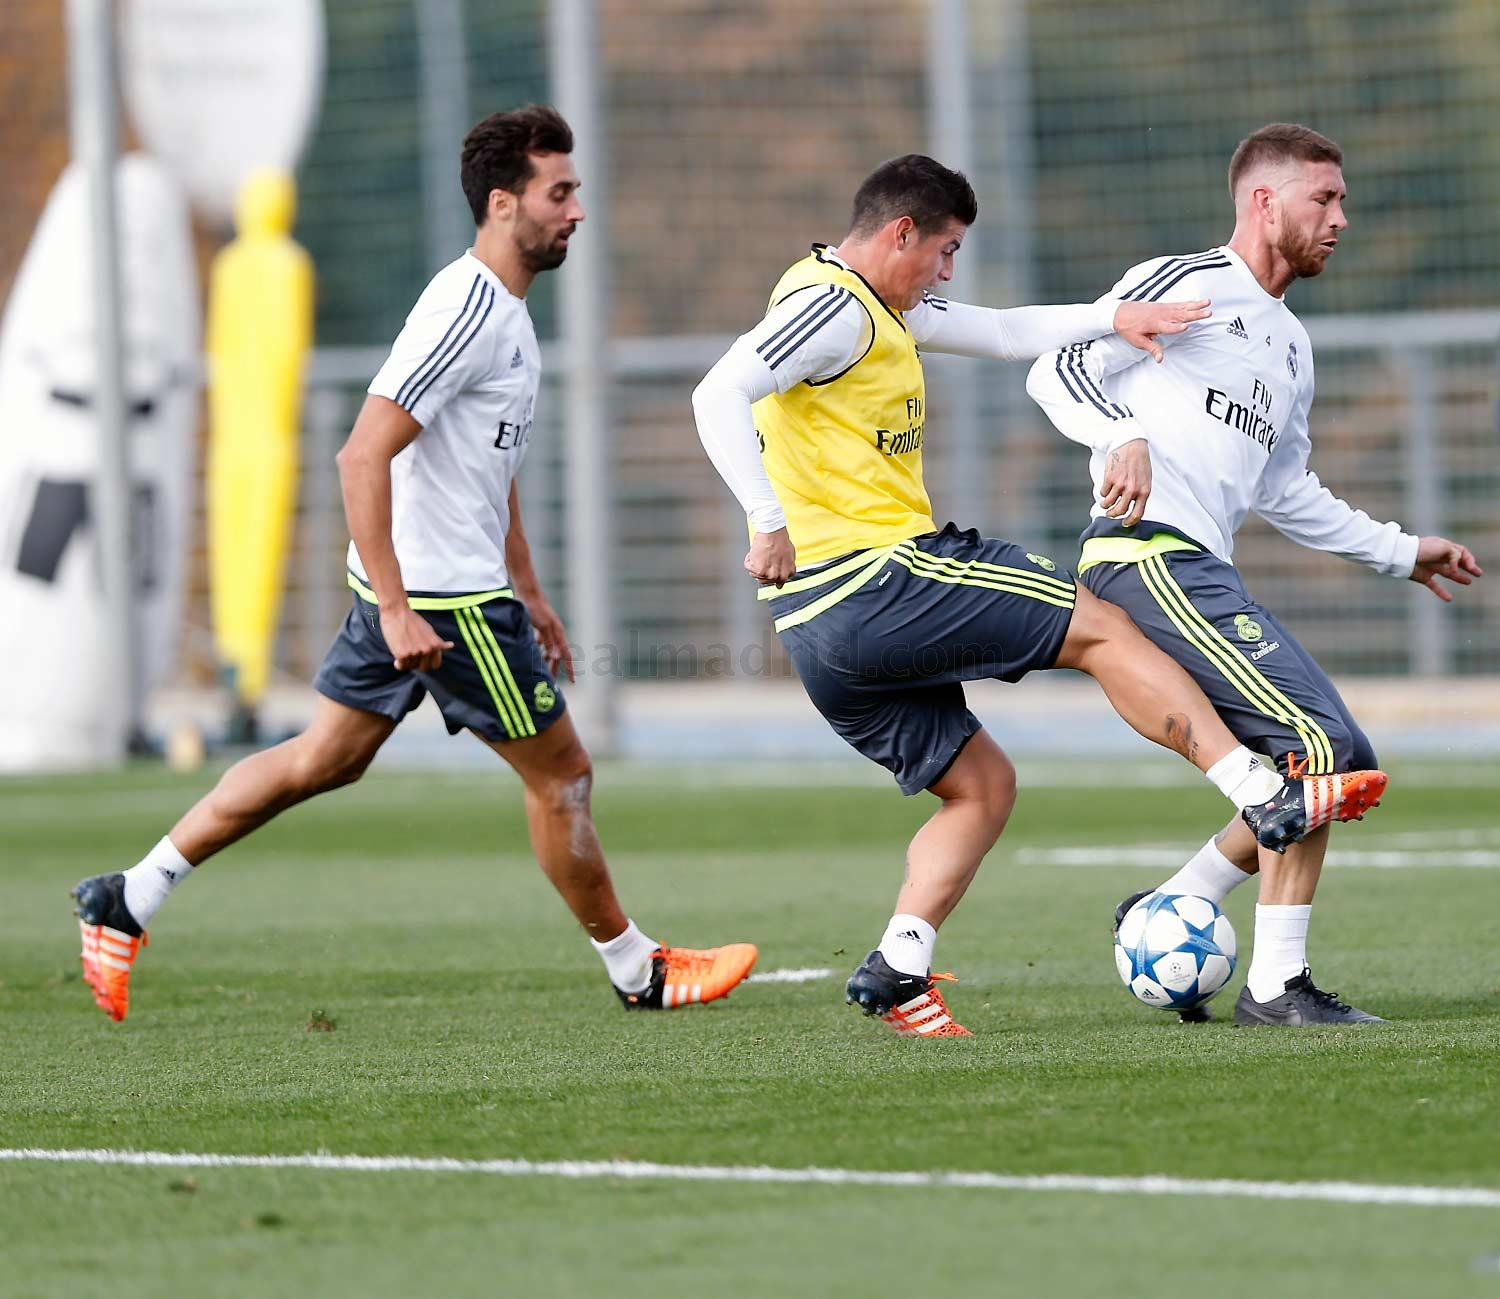 Real Madrid - Entrenamiento del Real Madrid - 01-11-2015